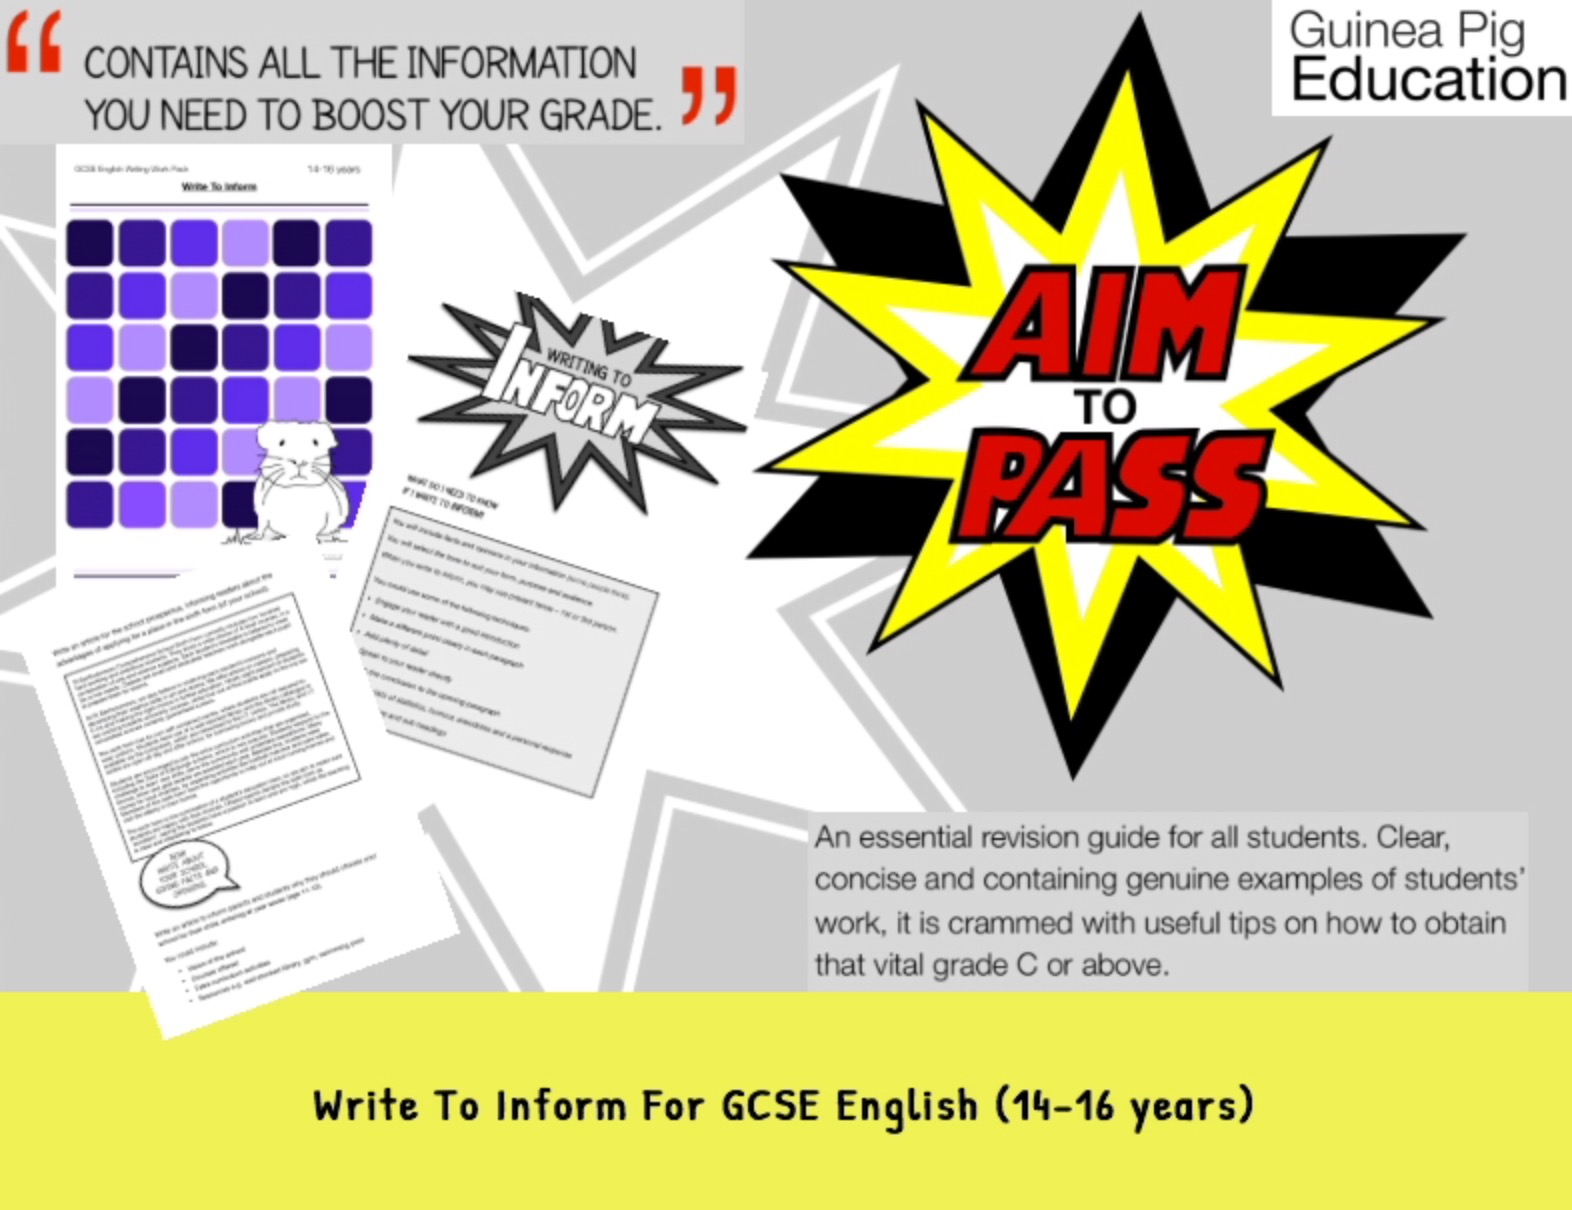 Write To Inform (Improve Your Grades At GCSE) (14-16 years)